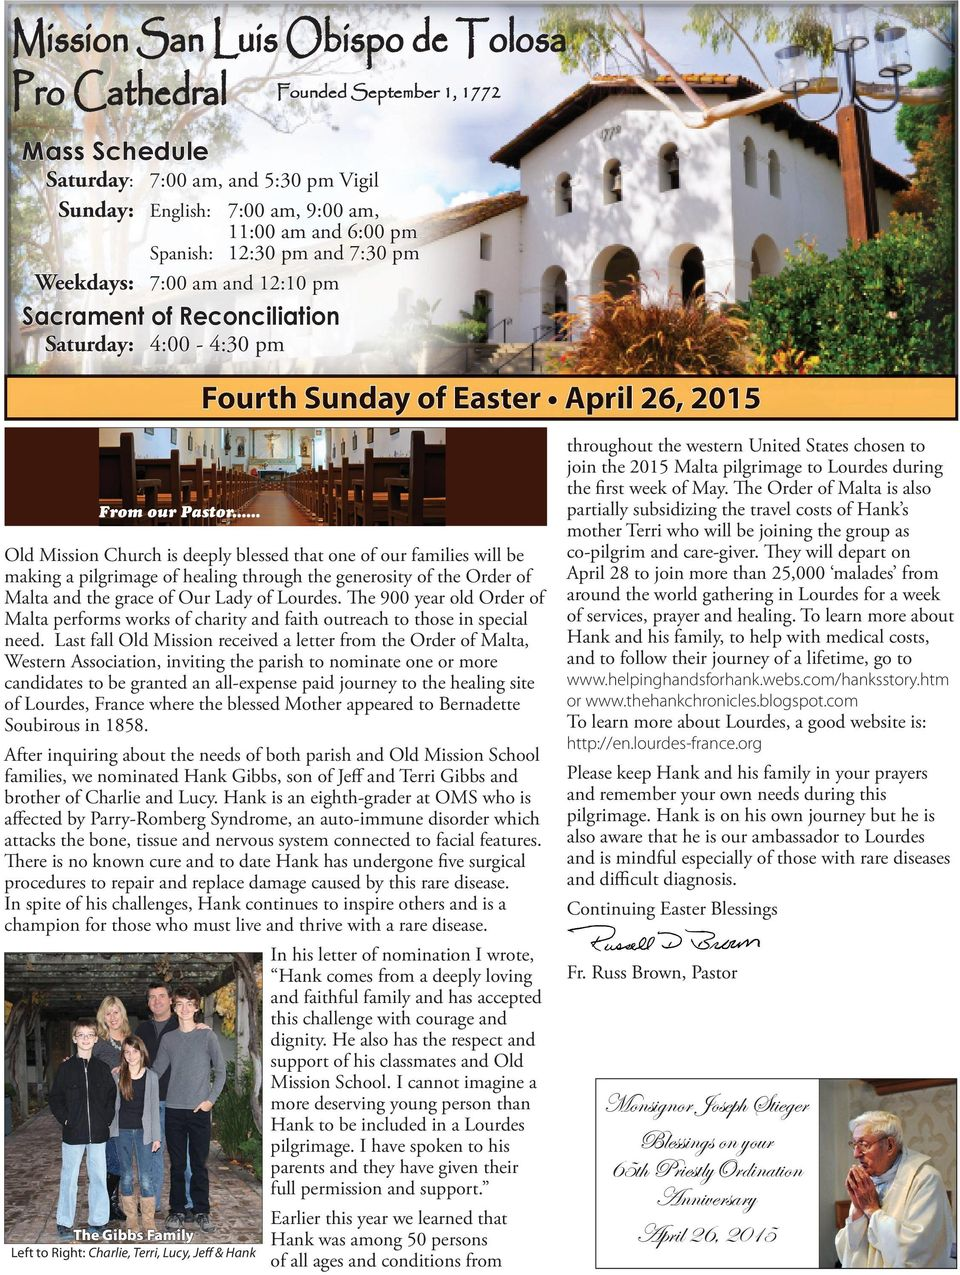 Easter ast ste ster ter A April prril 26, p pril 26, 201 2015 20 2015 From our Pastor.